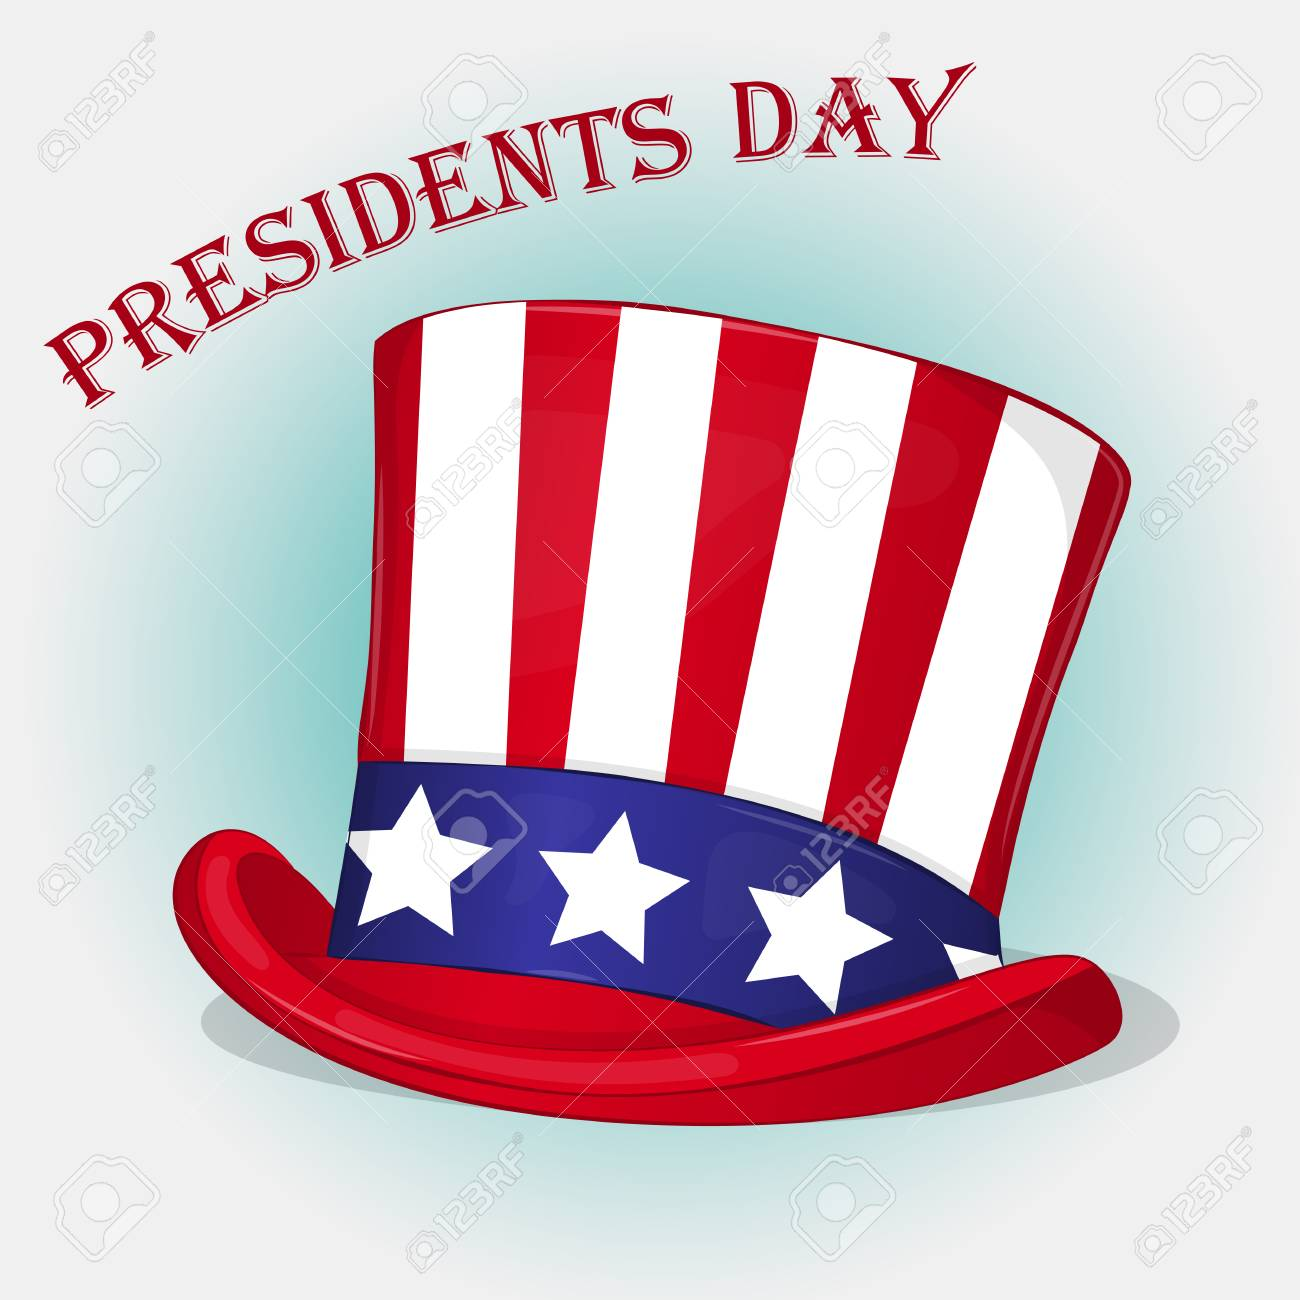 presidents day background with patriotic uncle sam hat holiday